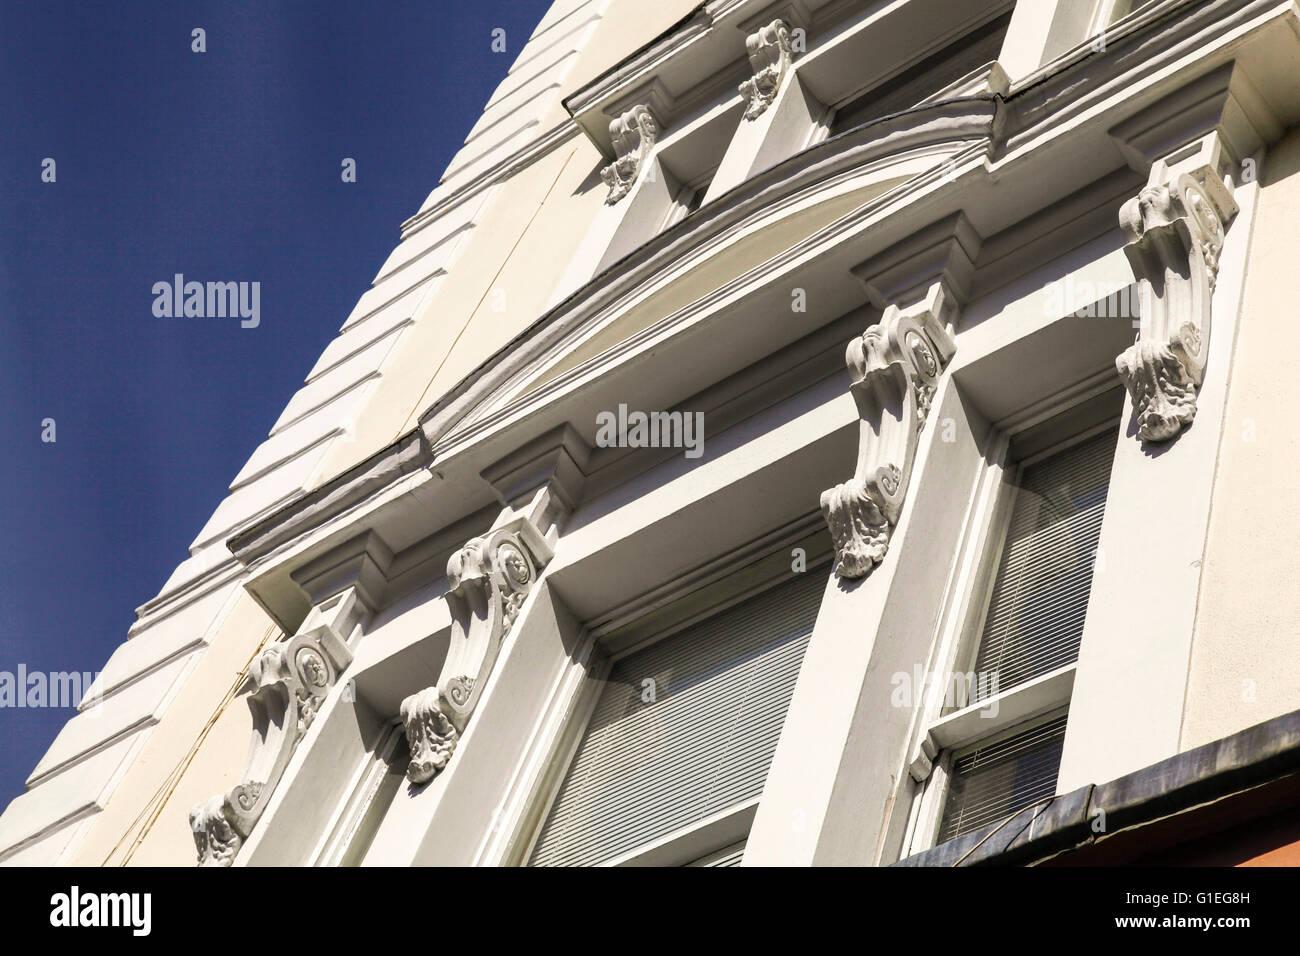 Belsize Lane, Hampstead. Angled view of the exterior of apartment building. - Stock Image